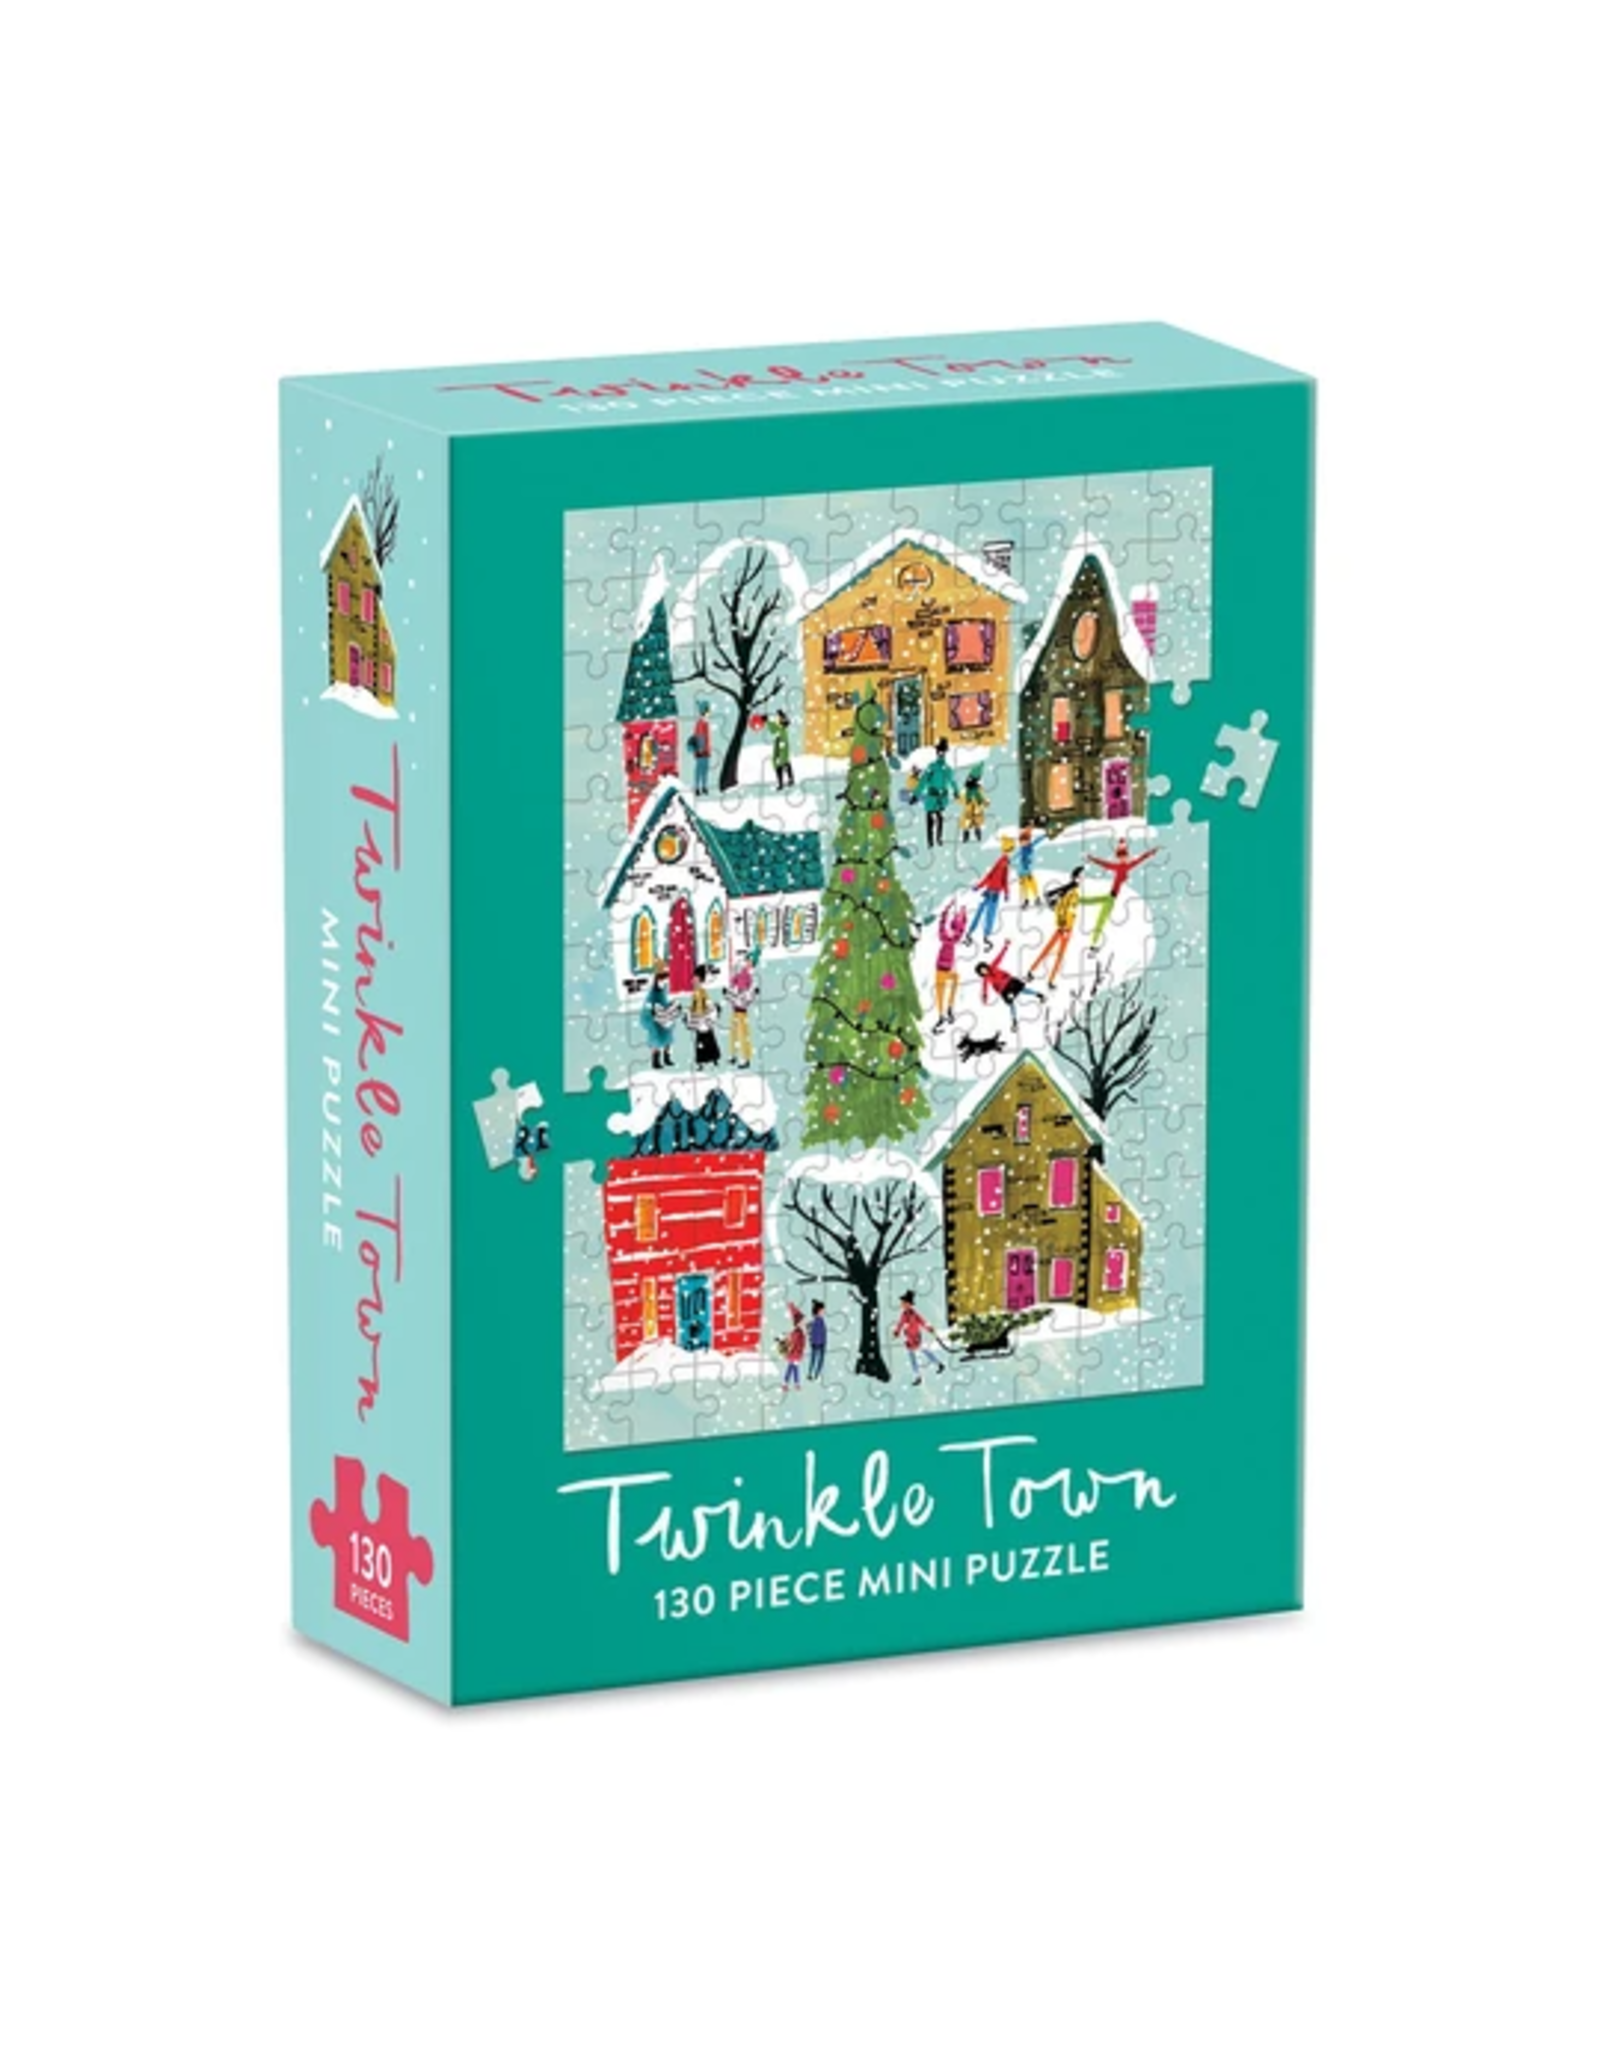 Galison Twinkle Town by Louise Cunningham Mini Puzzle 130p